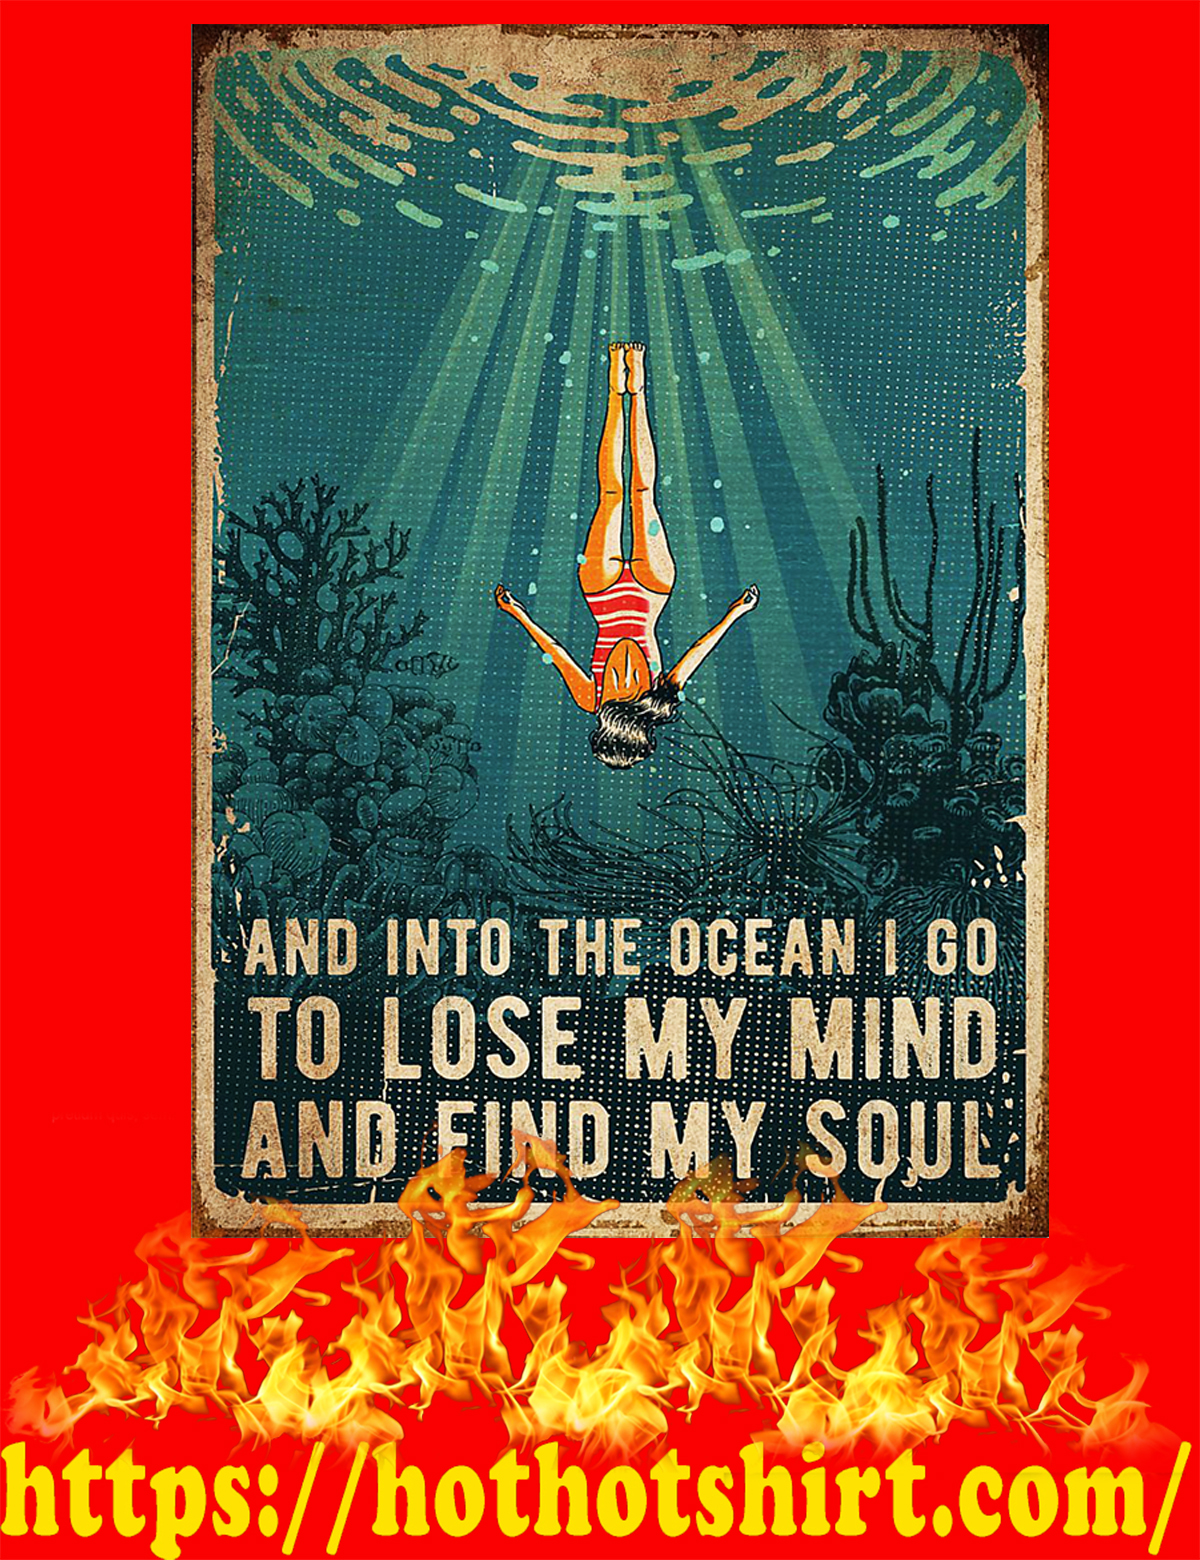 Swimming And into the ocean i go to lose my mind and find my soul poster - A4